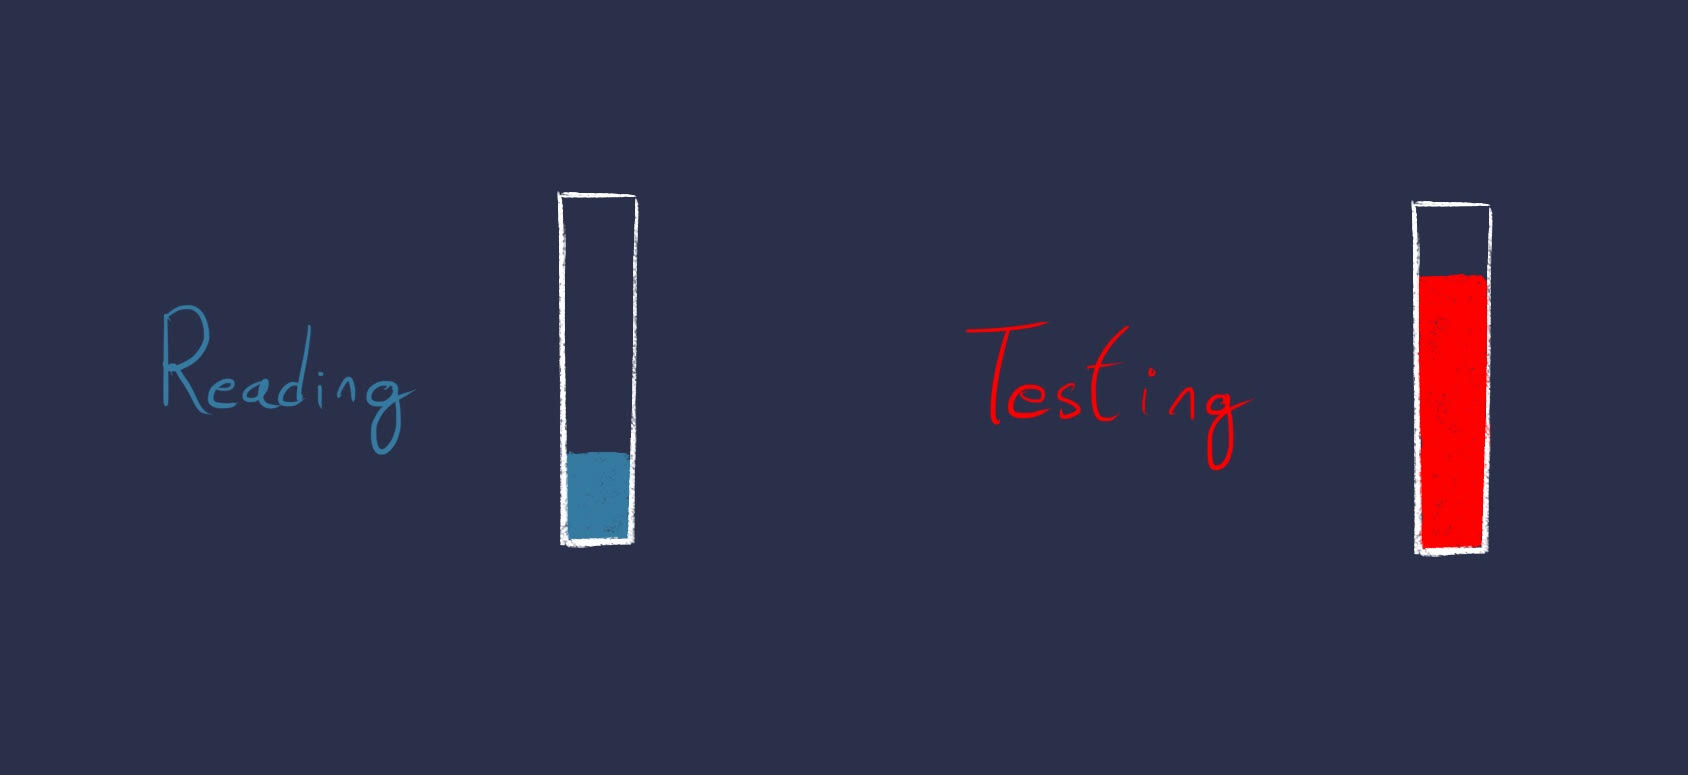 Testing is more effective than reading